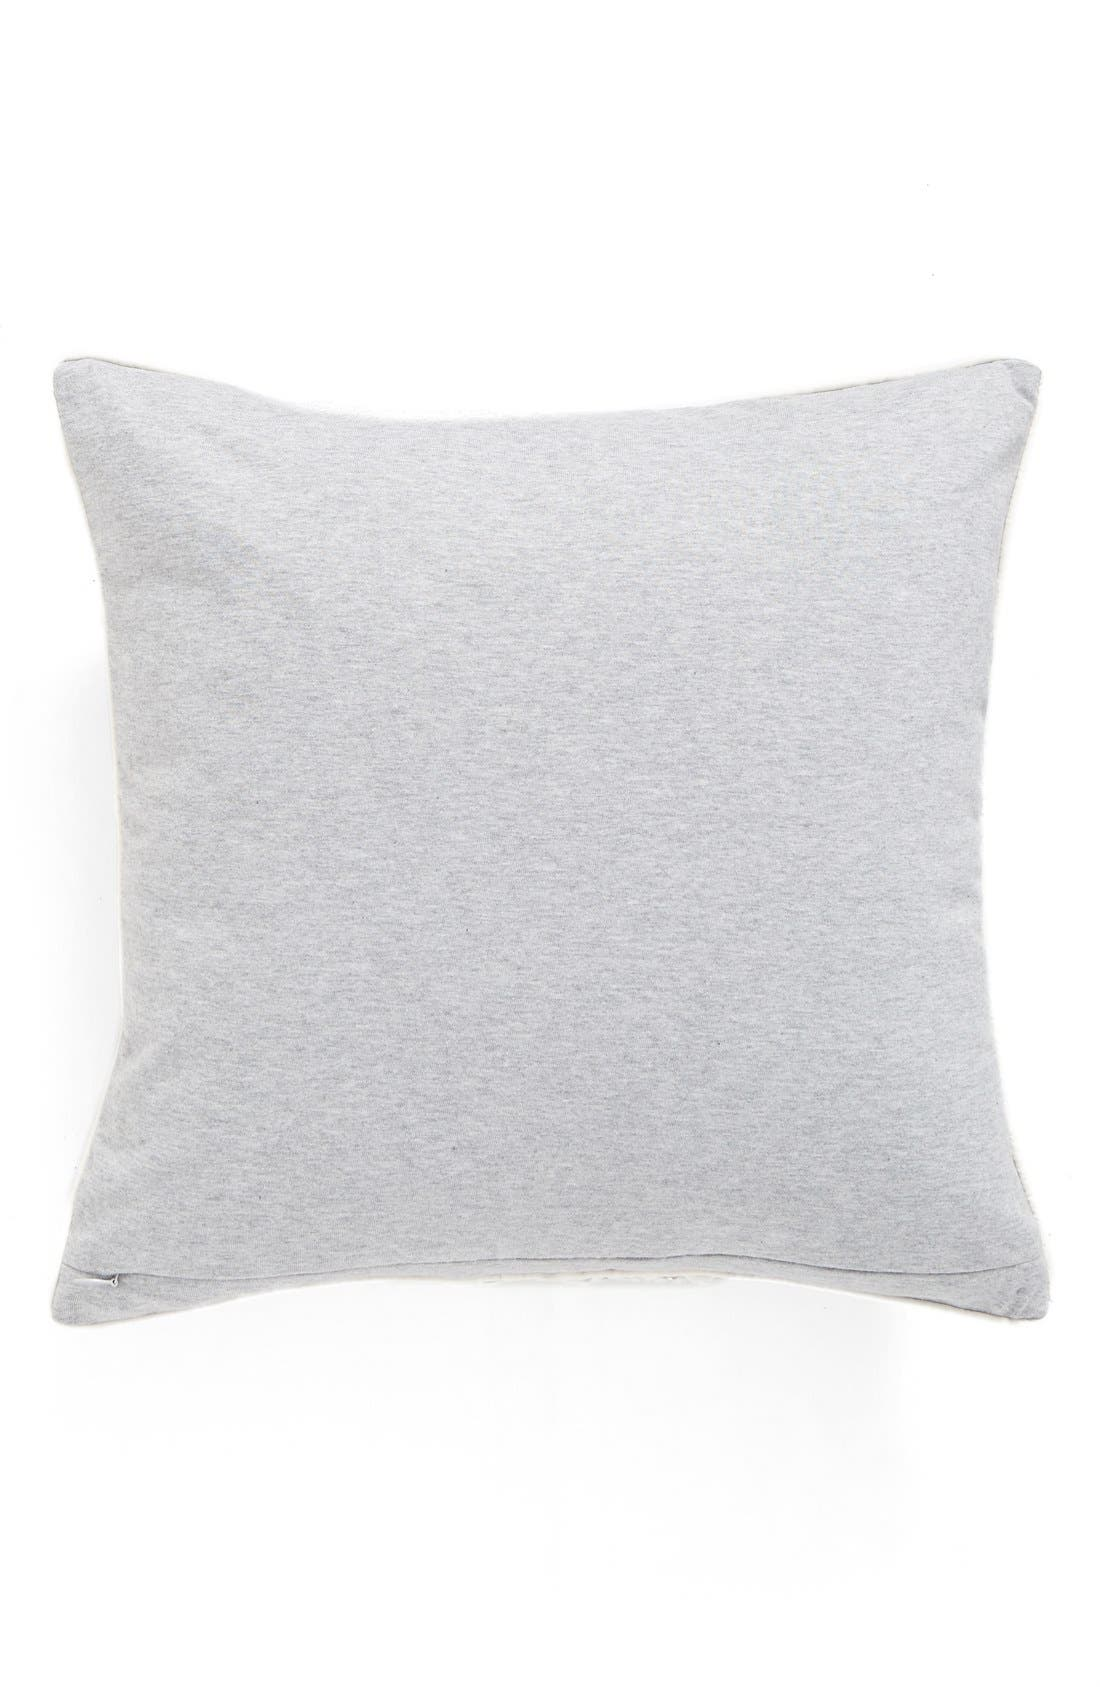 Snowflake Jersey Accent Pillow,                             Alternate thumbnail 2, color,                             Grey Heather